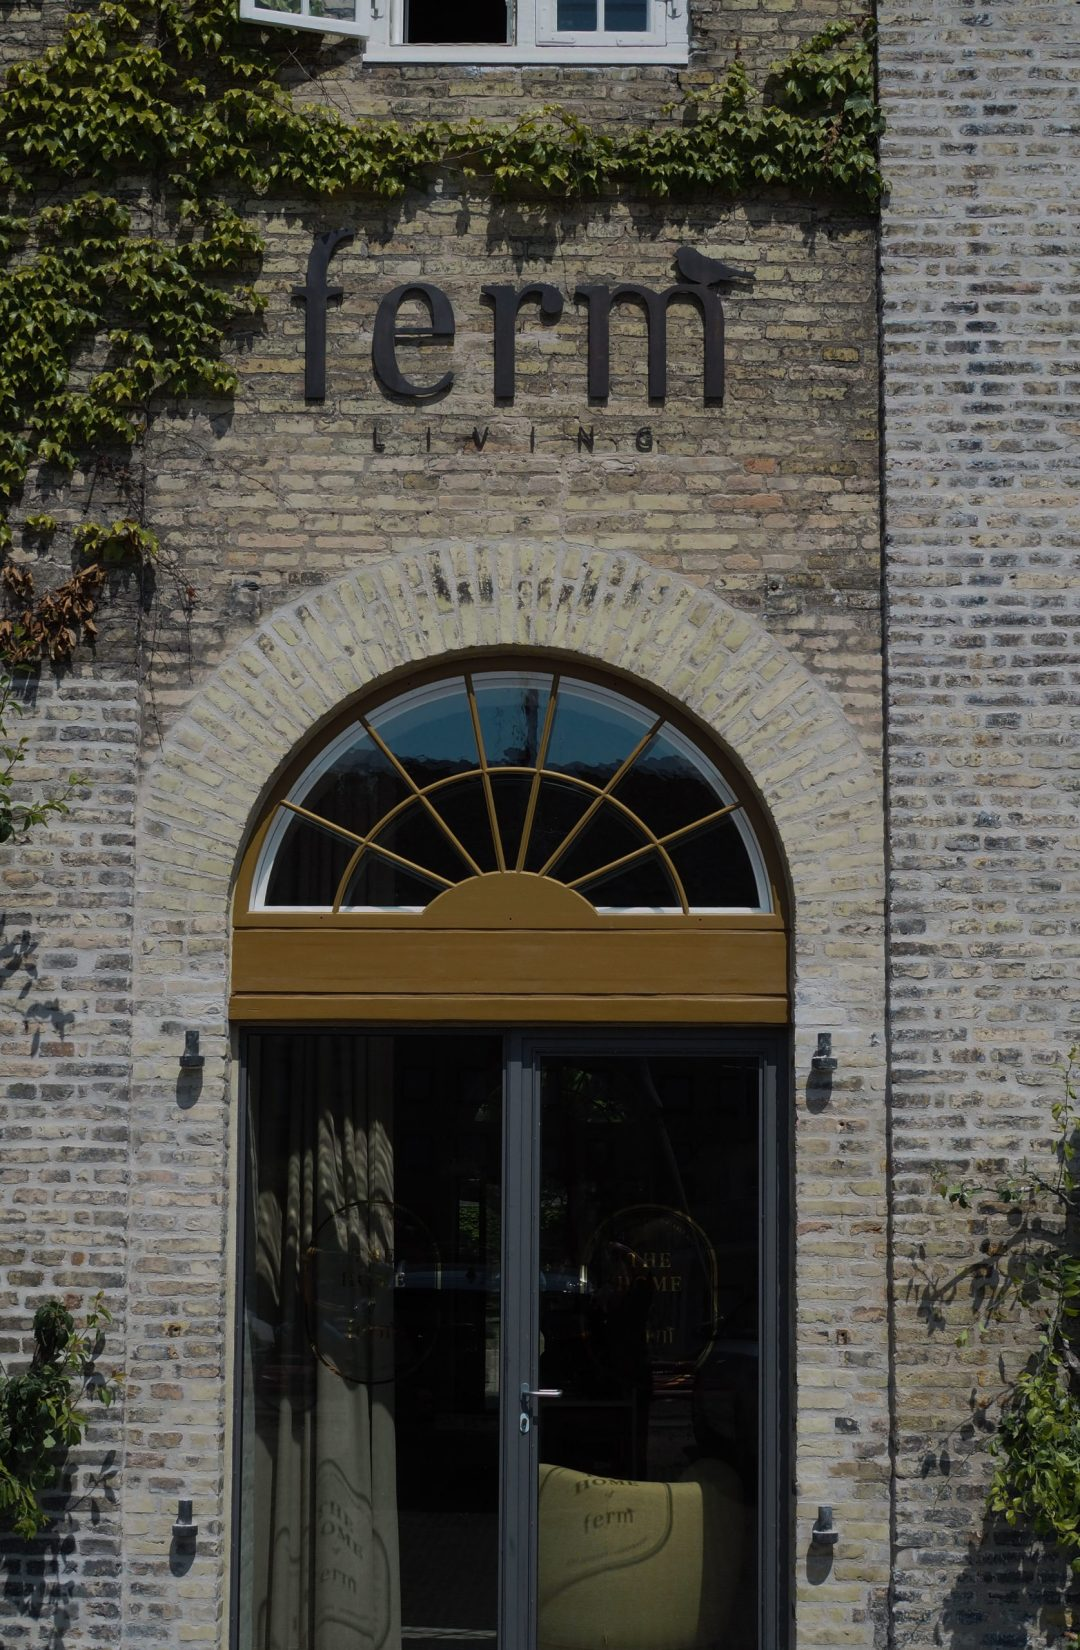 The new home of Ferm Living 2020